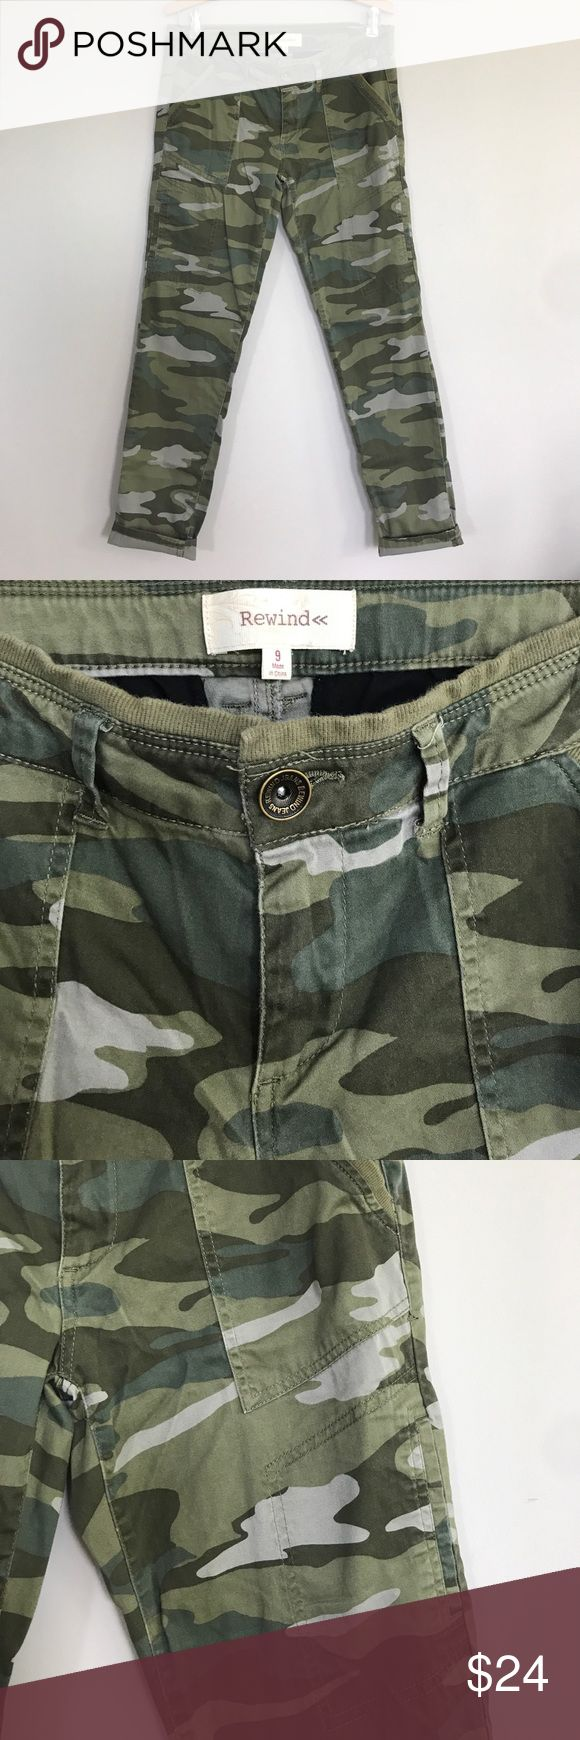 """Rewind camouflage skinny pants VGUC, light wash wear, no flaws, lightweight with a little stretch, measurements taken flat: waist 16"""", hips 19"""", front rise 8"""", inseam 29"""" Rewind Pants Skinny"""